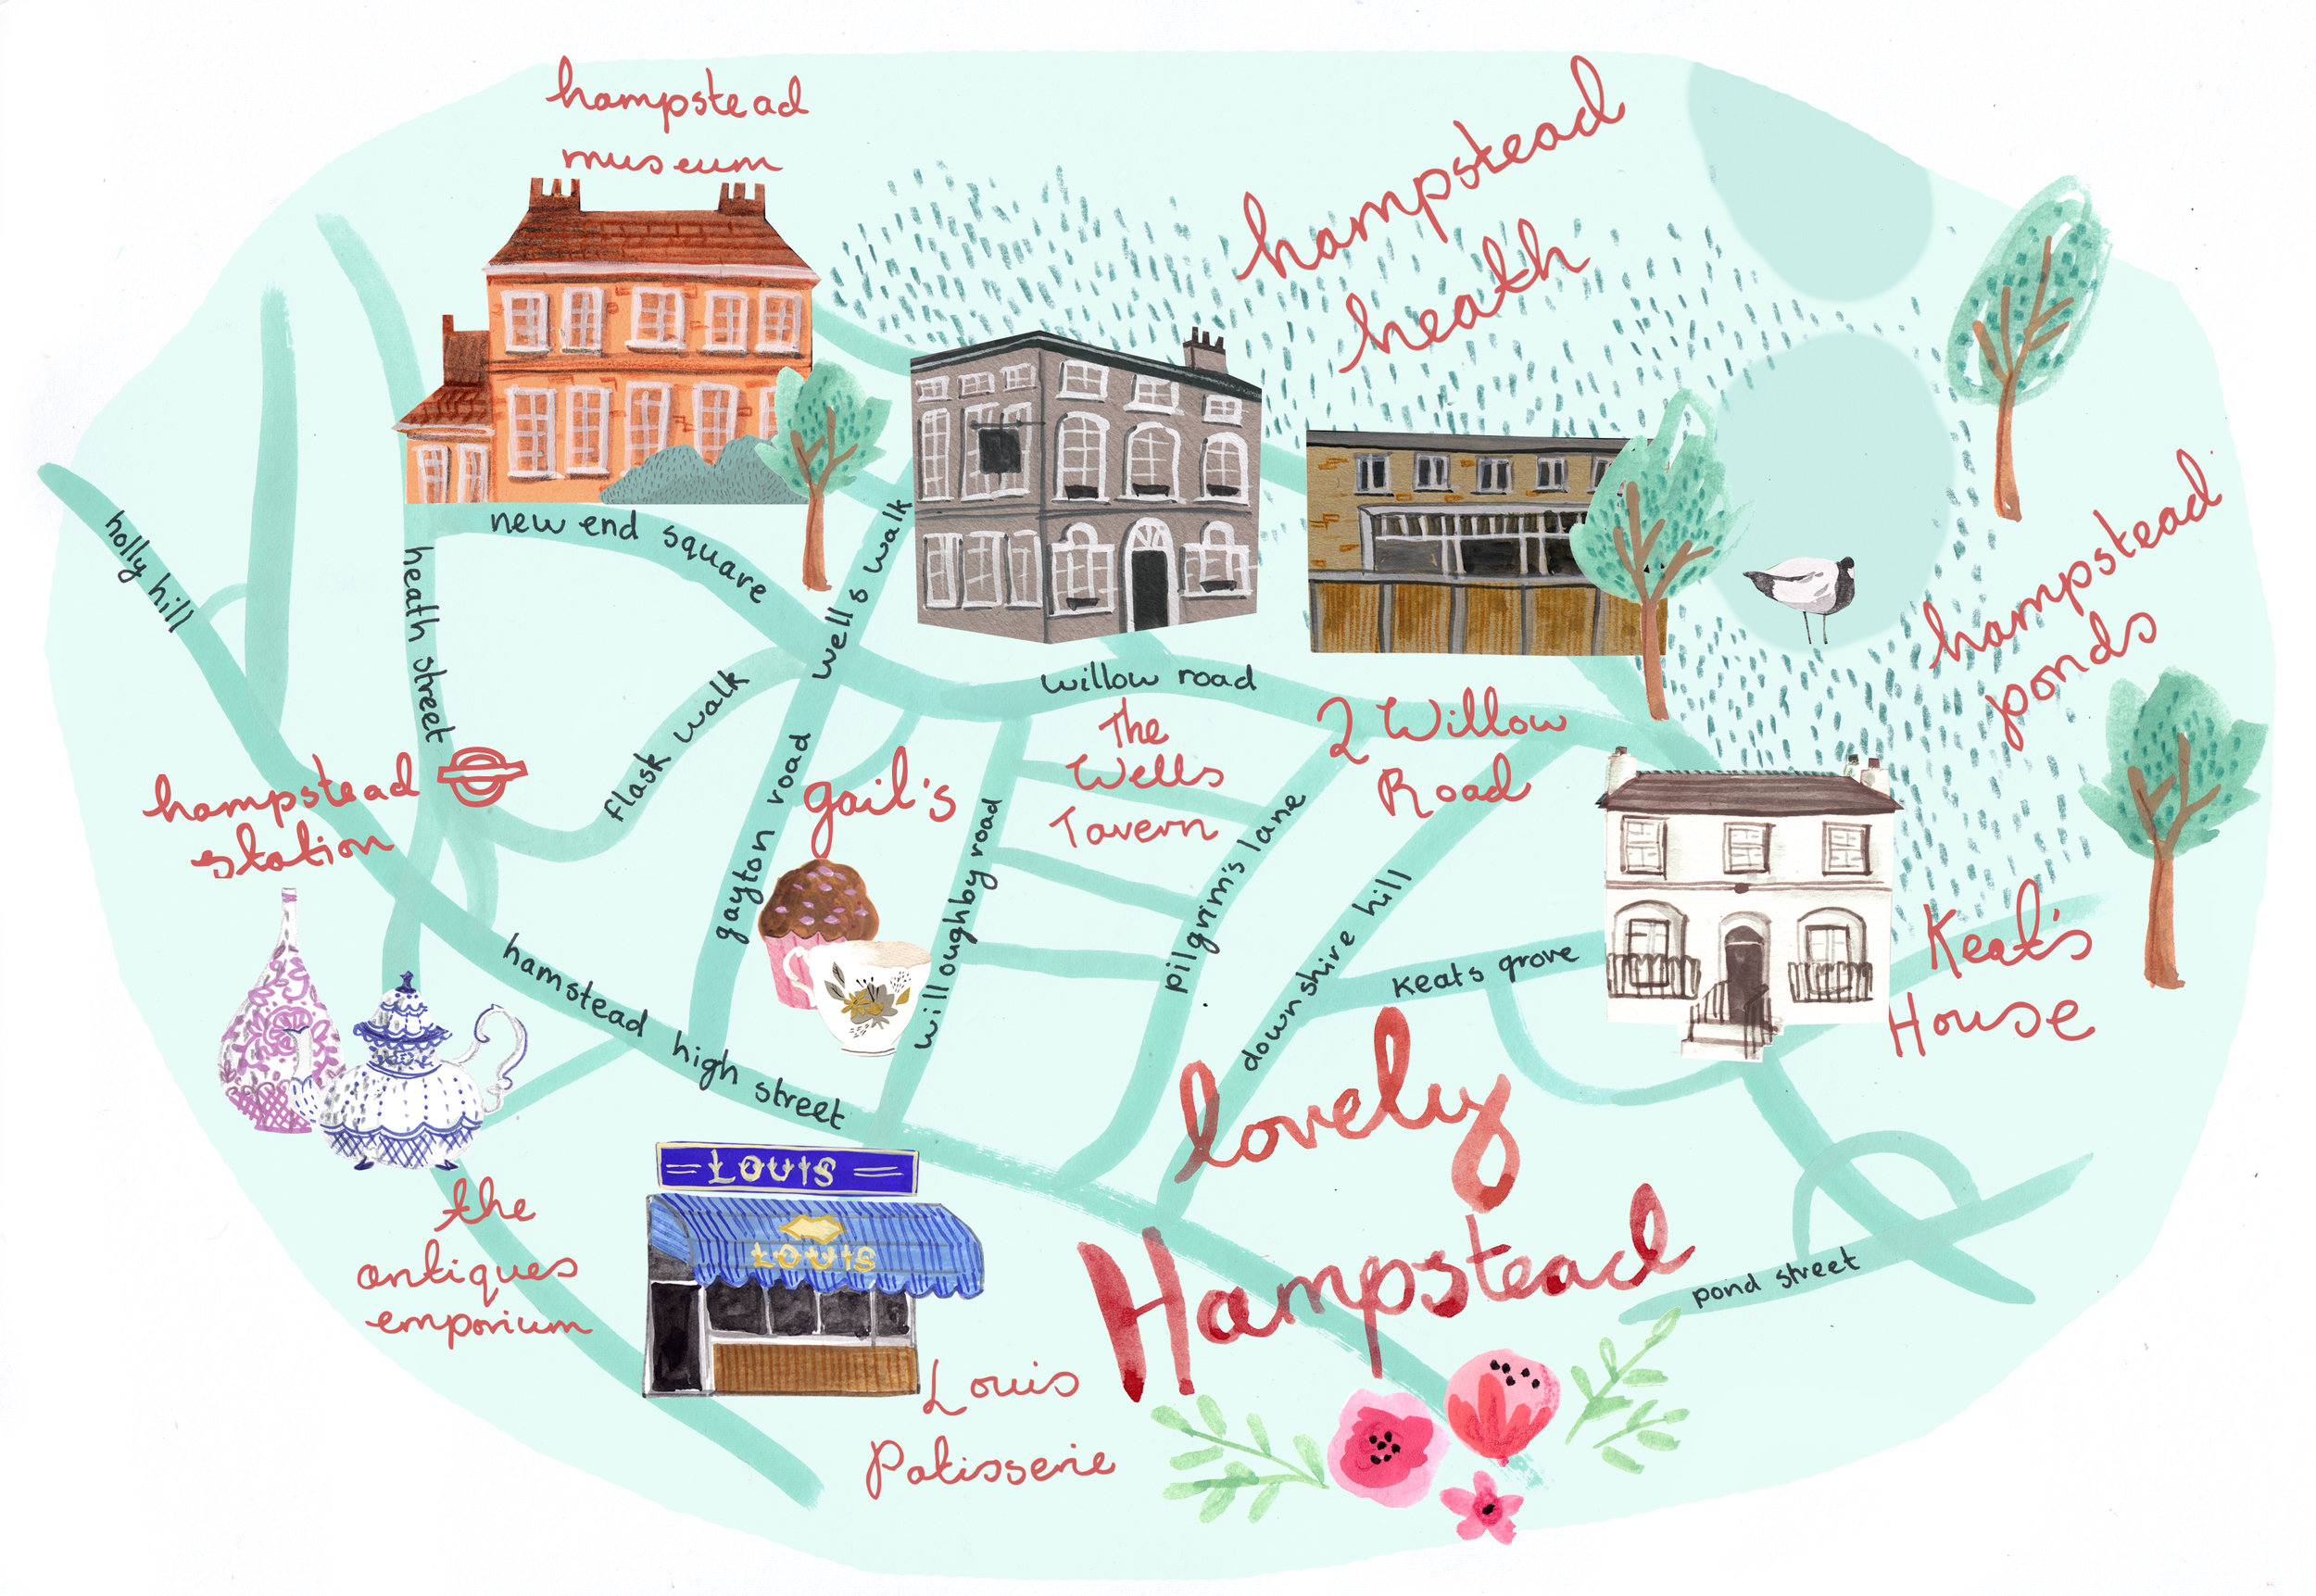 Hampstead Map